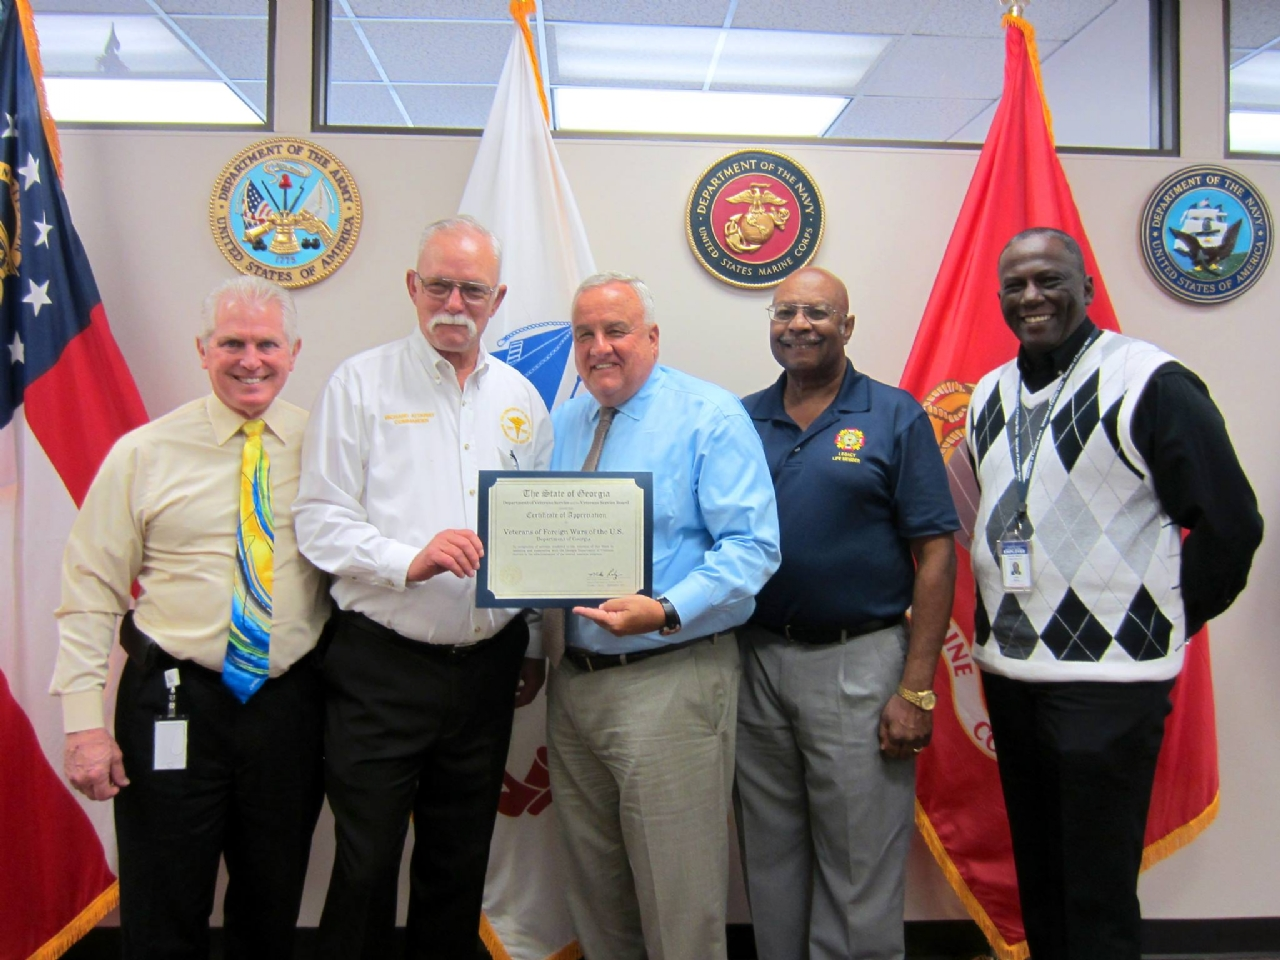 September 28, 2017. Pictured from left: GDVS Assistant Commissioner George Canavaggio, VFW Department of Georgia Commander Richard Attaway, GDVS Commissioner Mike Roby, VFW Senior Vice Commander Tony Dobbins, and GDVS Atlanta office manager and VFW State Judge Advocate/Service Officer Joel Willis